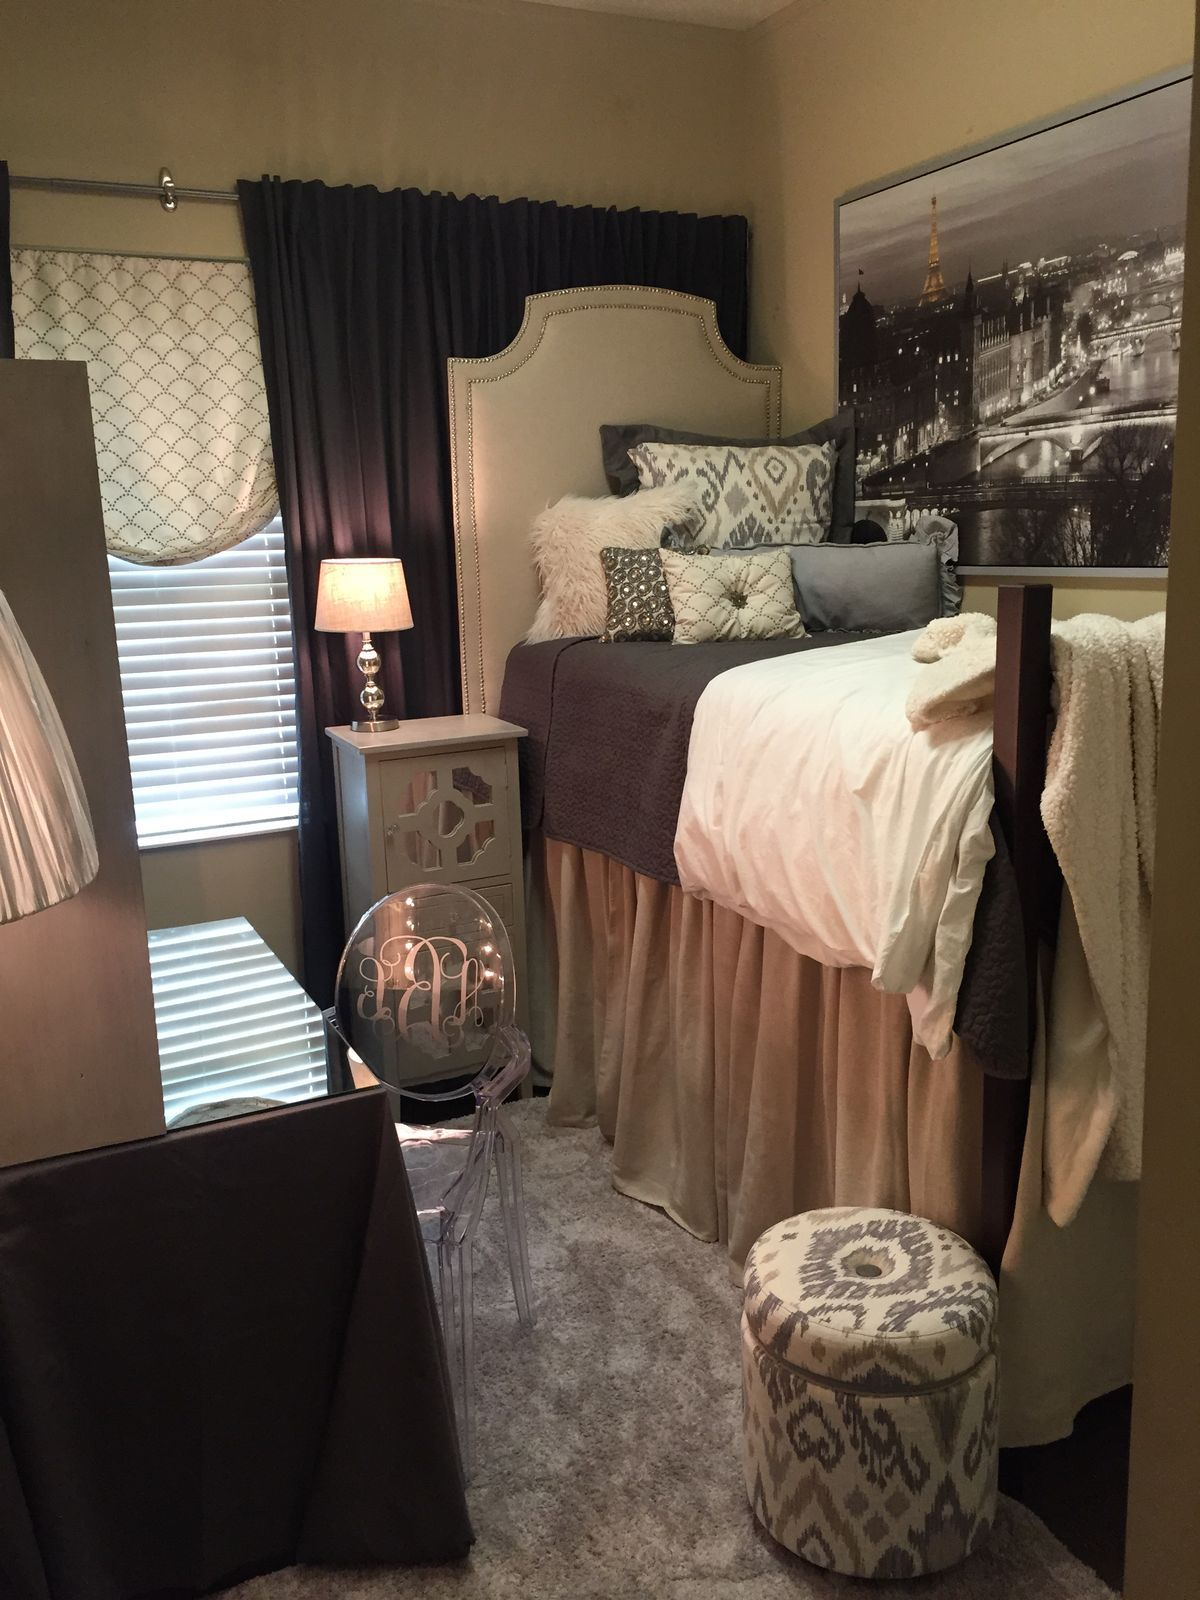 Dorm Room Layouts: Pin By Melissa Munsterman On Beds